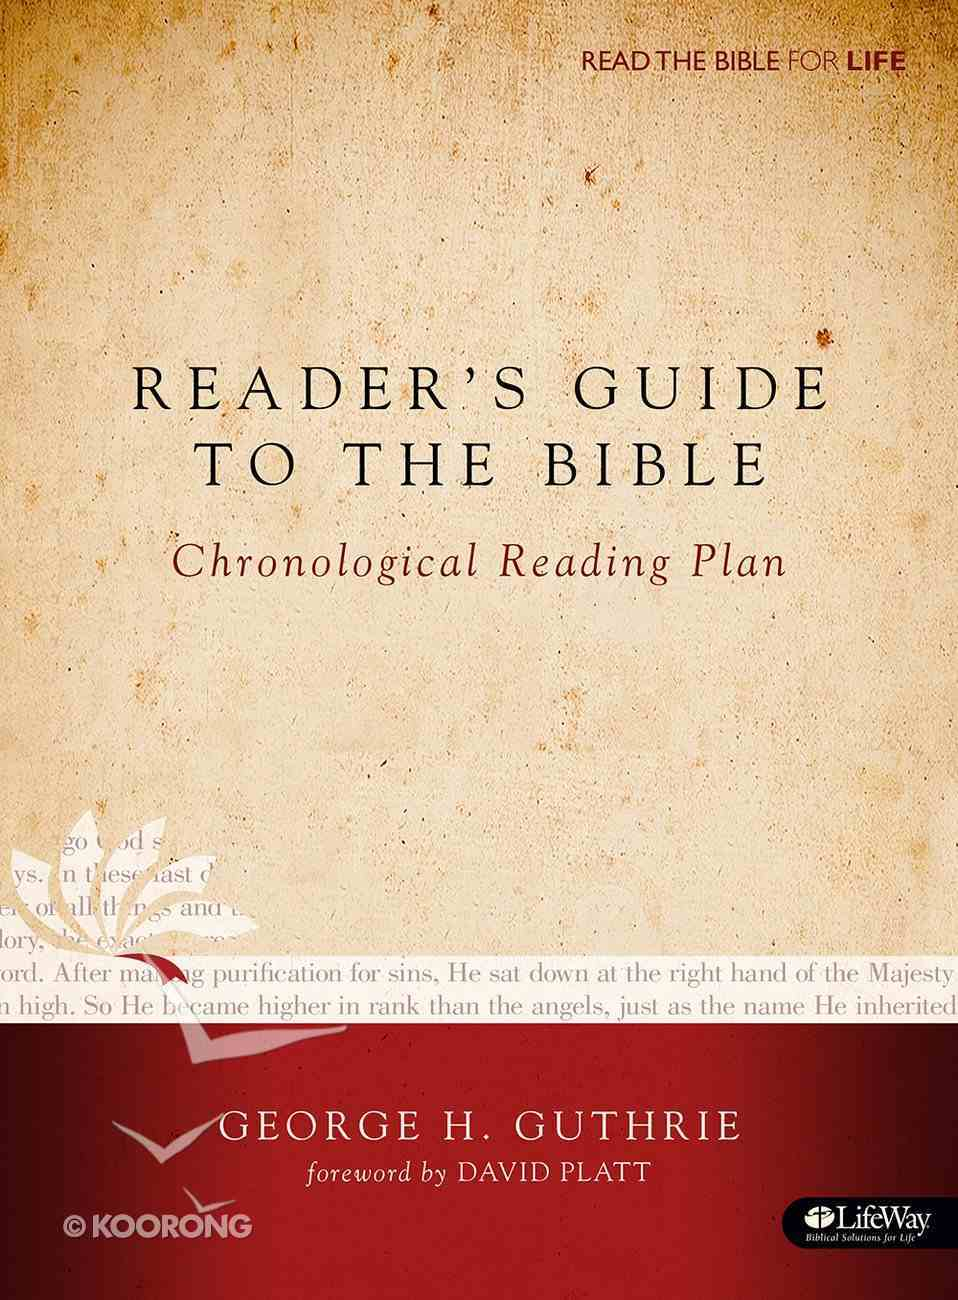 Reader's Guide to the Bible: A Chronological Reading Plan Paperback